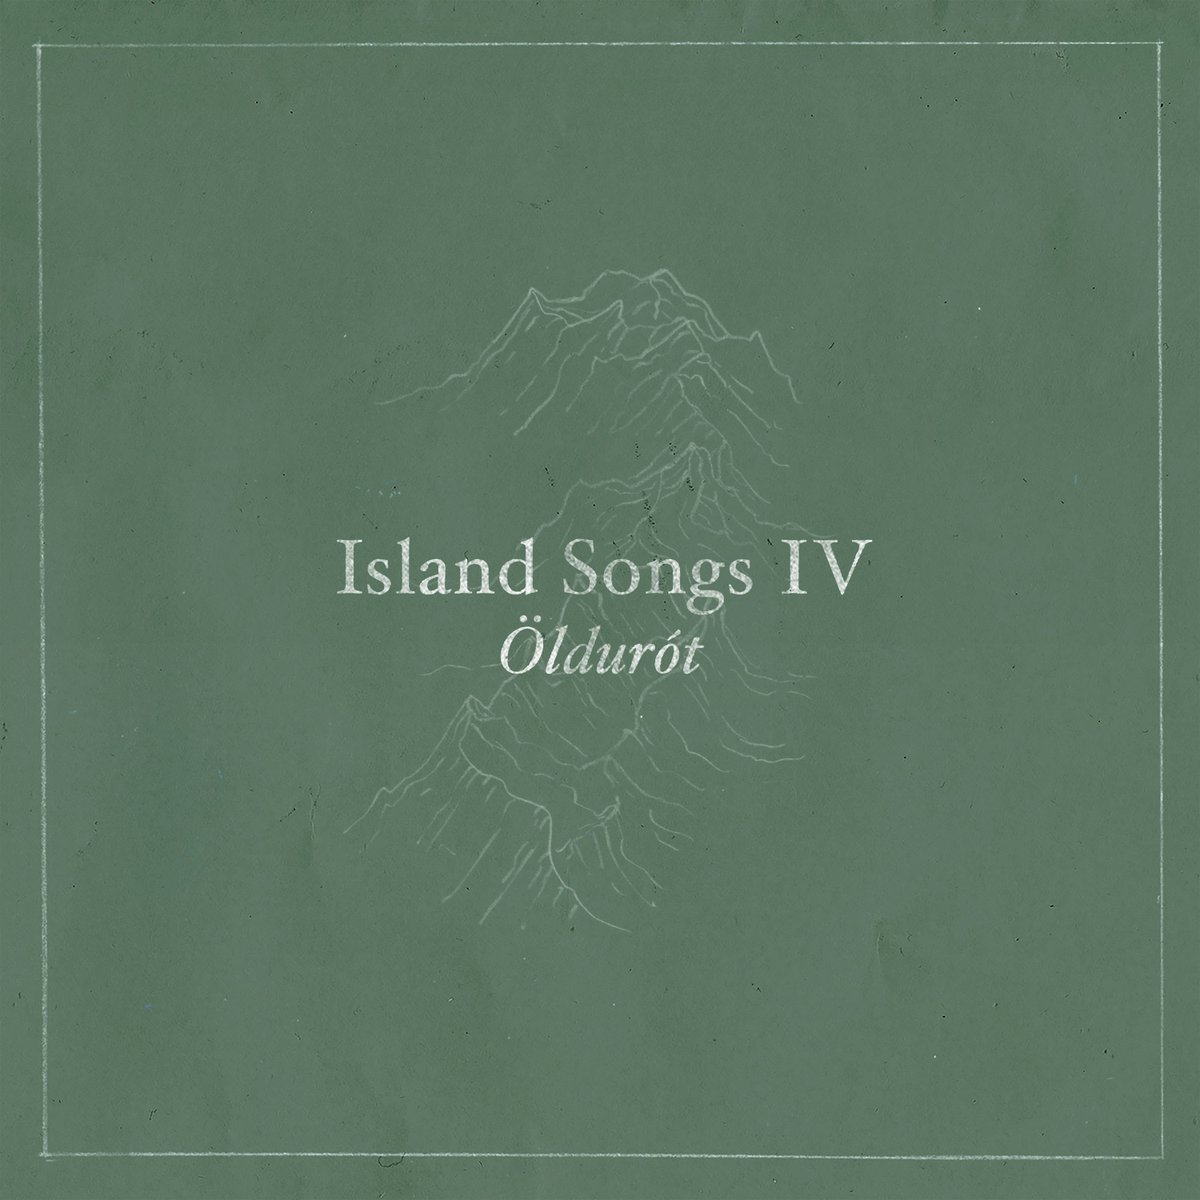 Have you heard the fourth track from #islandsongs?  Listen on @AppleMusic: https://t.co/CQYr2FyMQr https://t.co/VeZk2ORnLD